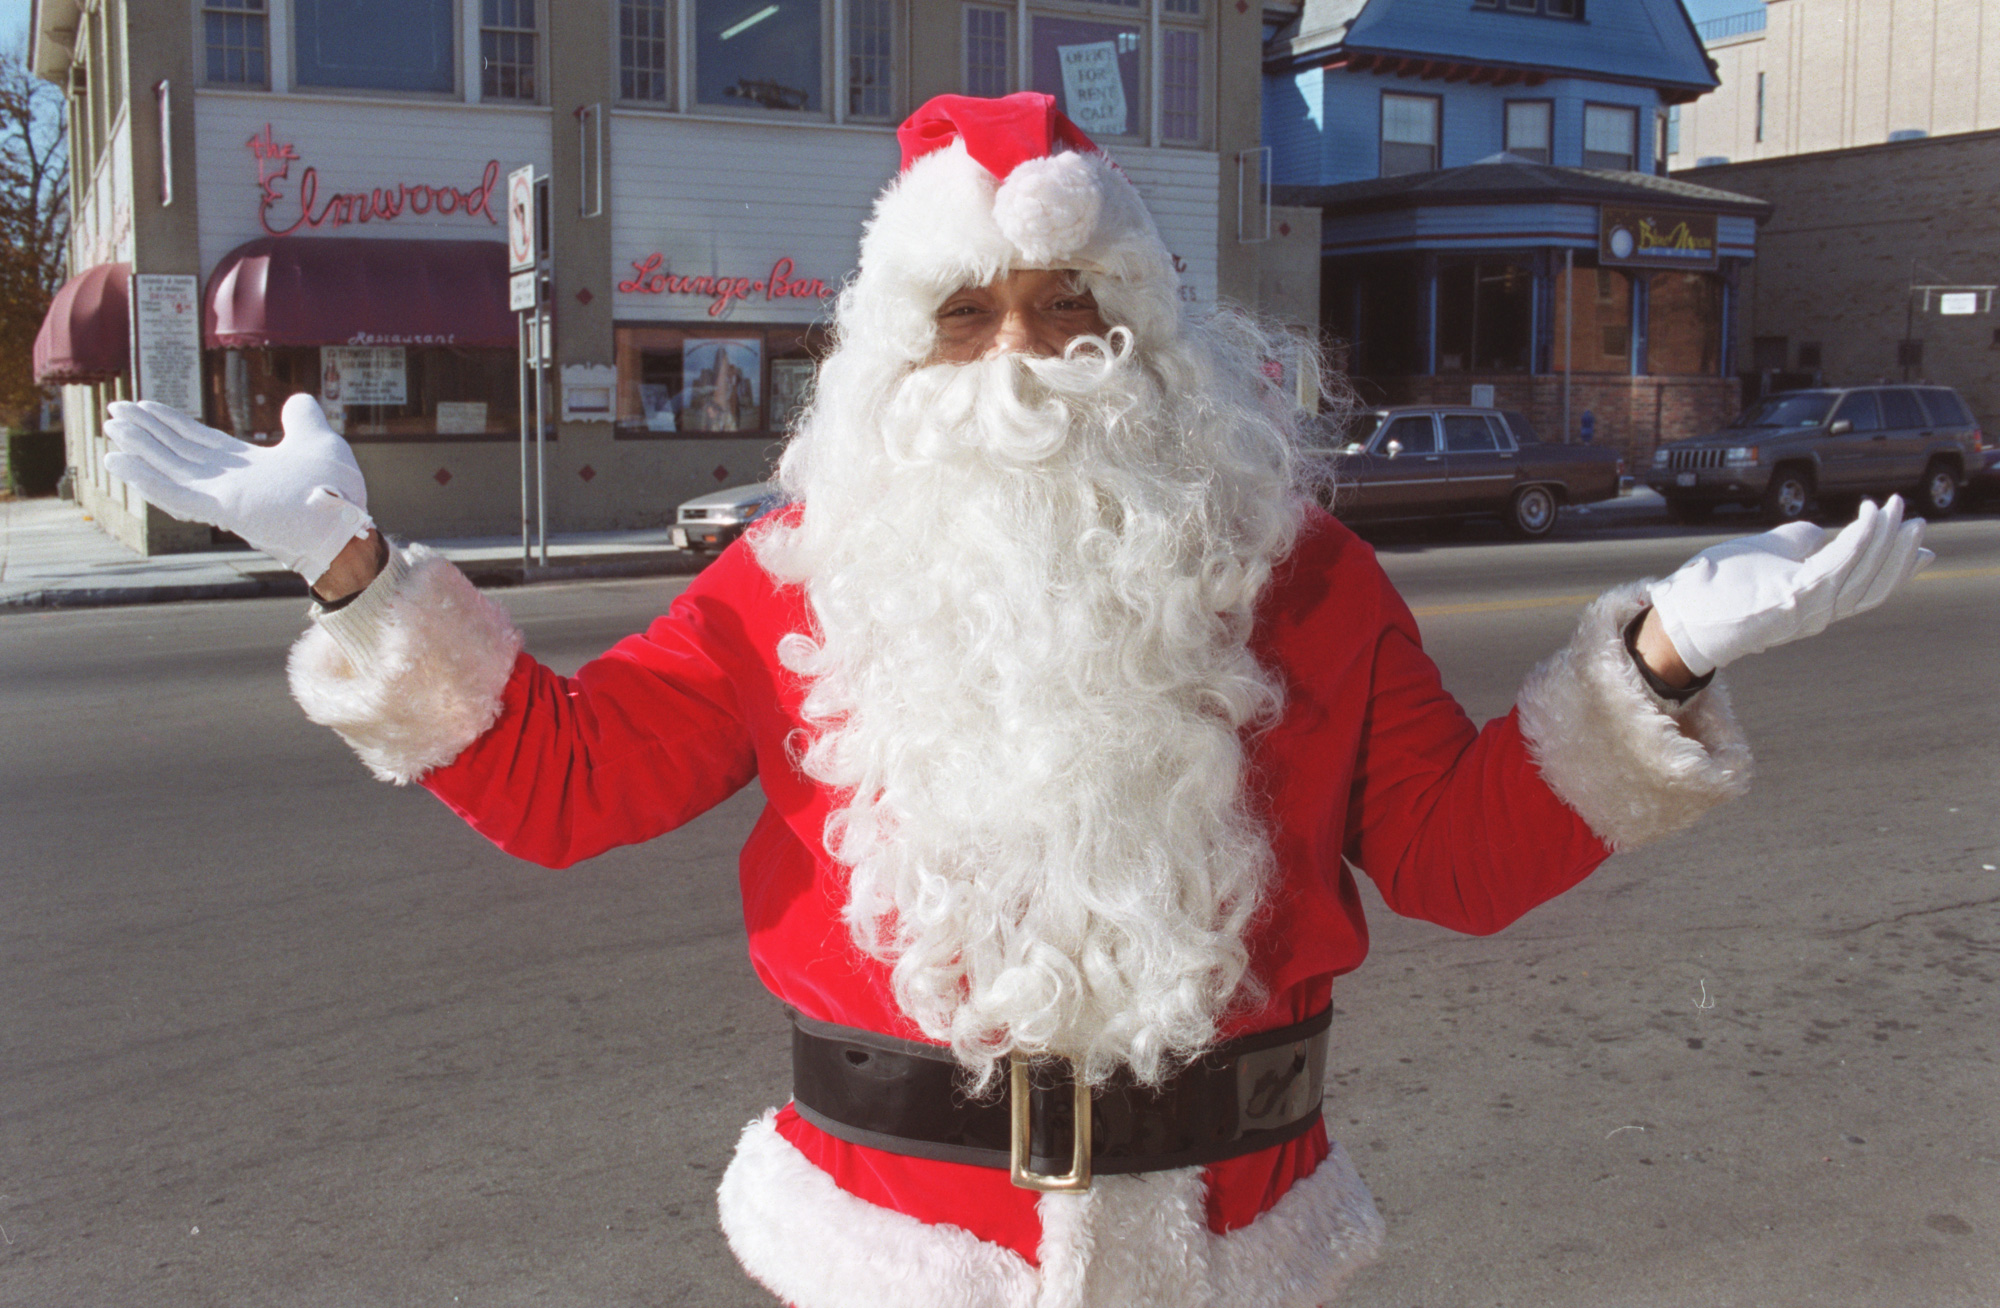 Santa Claus stands outside of the Elmwood Restaurant and Lounge during a past holiday season. (File photo by Charles Lewis)